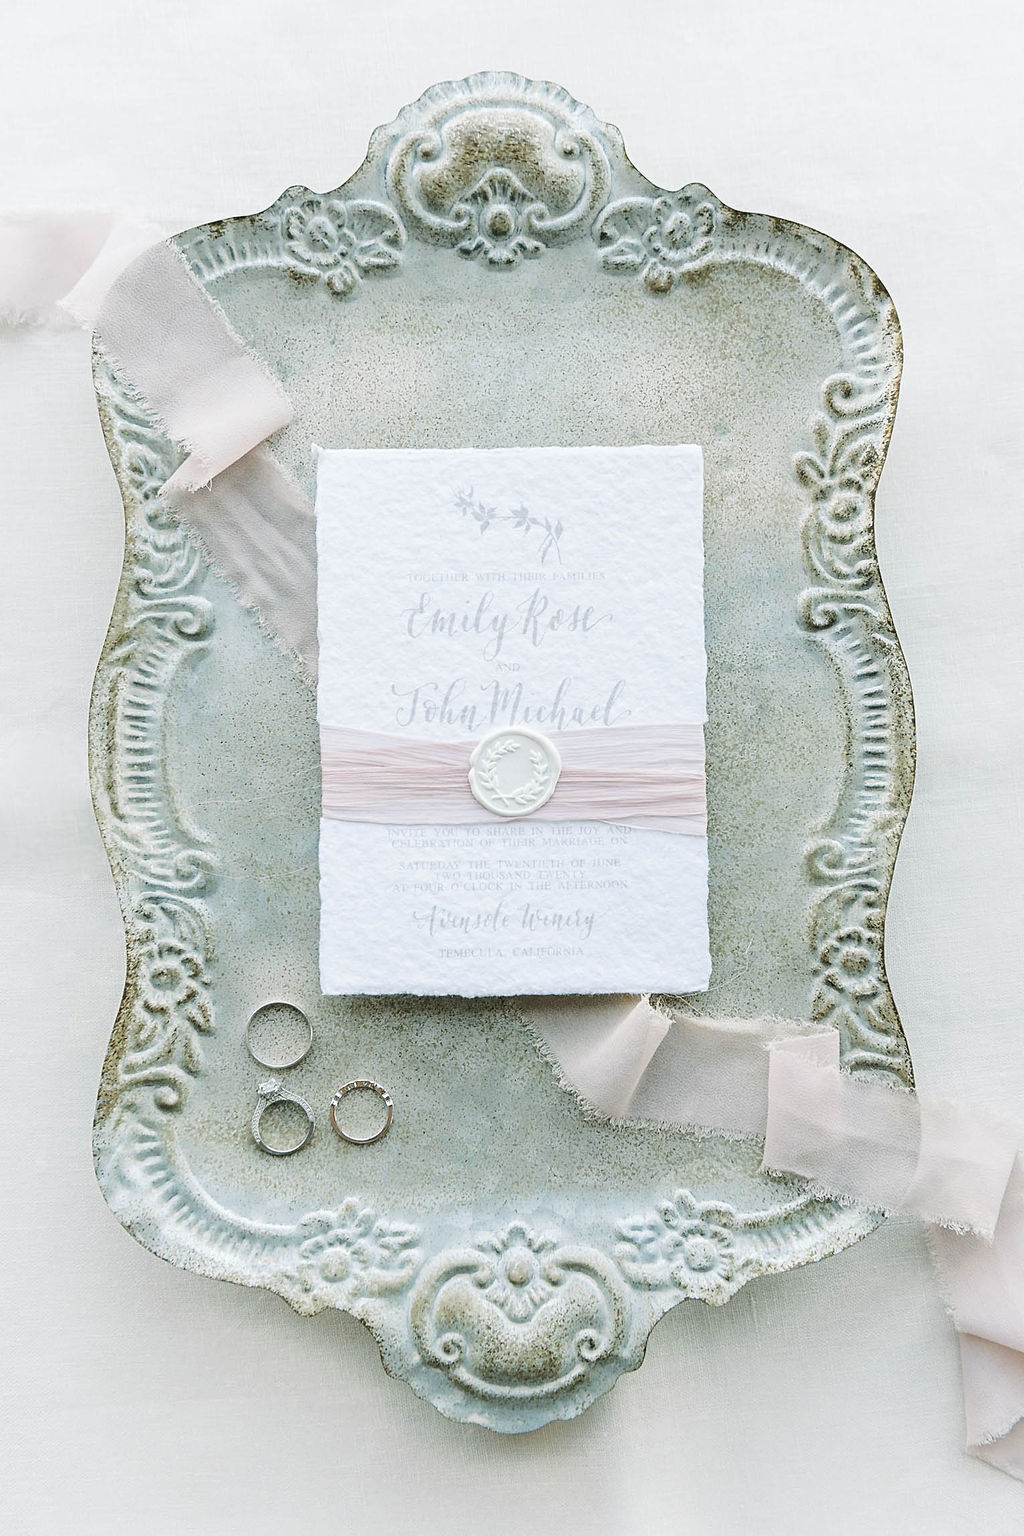 Blush pink ribbon wrapped around a wedding invitation